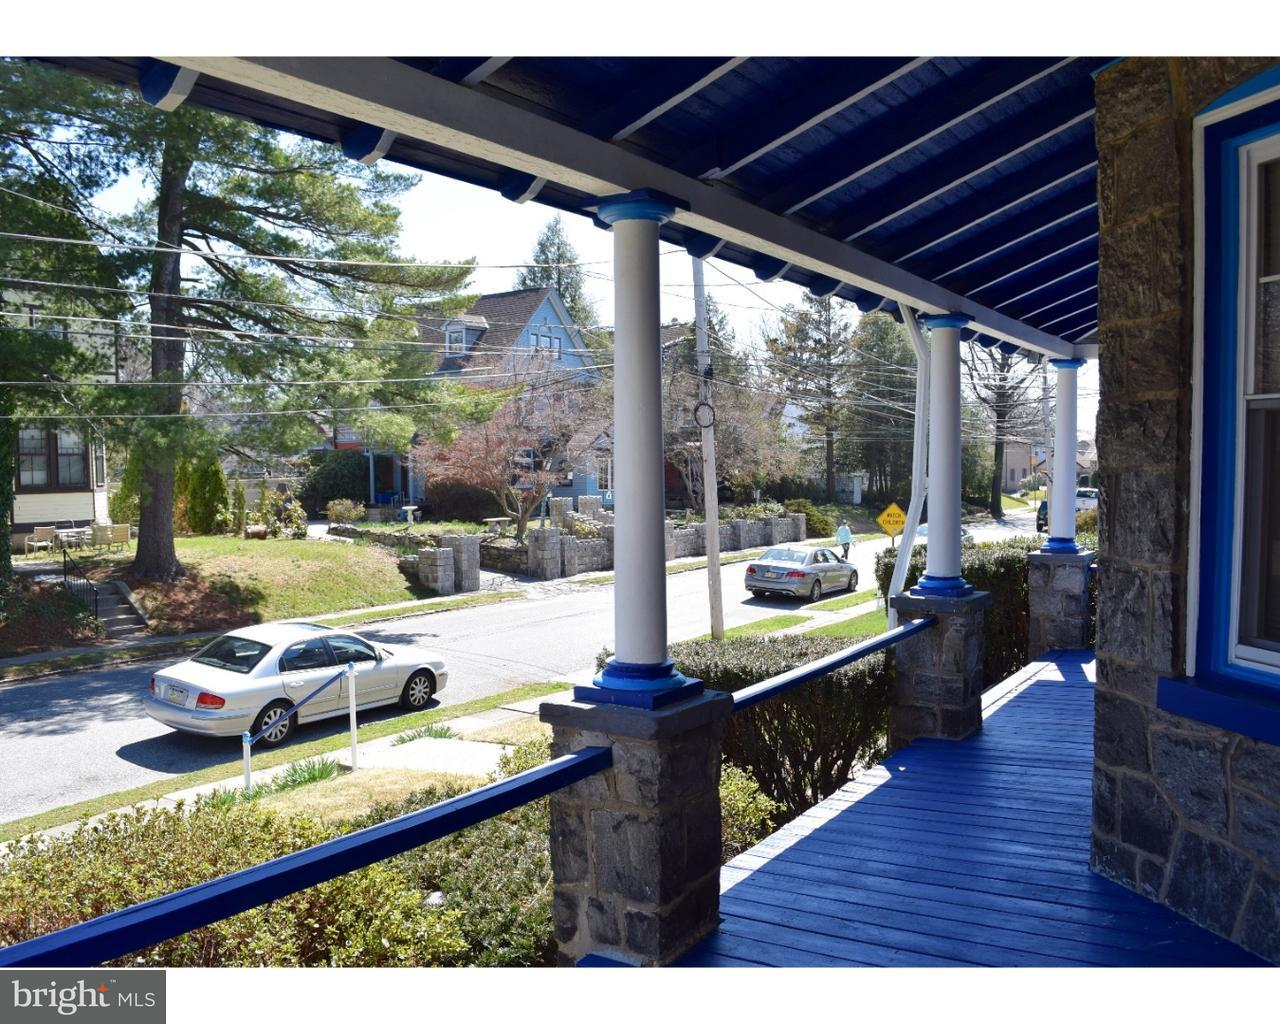 25 W HINCKLEY AVE, RIDLEY PARK - Listed at $249,900, RIDLEY PARK